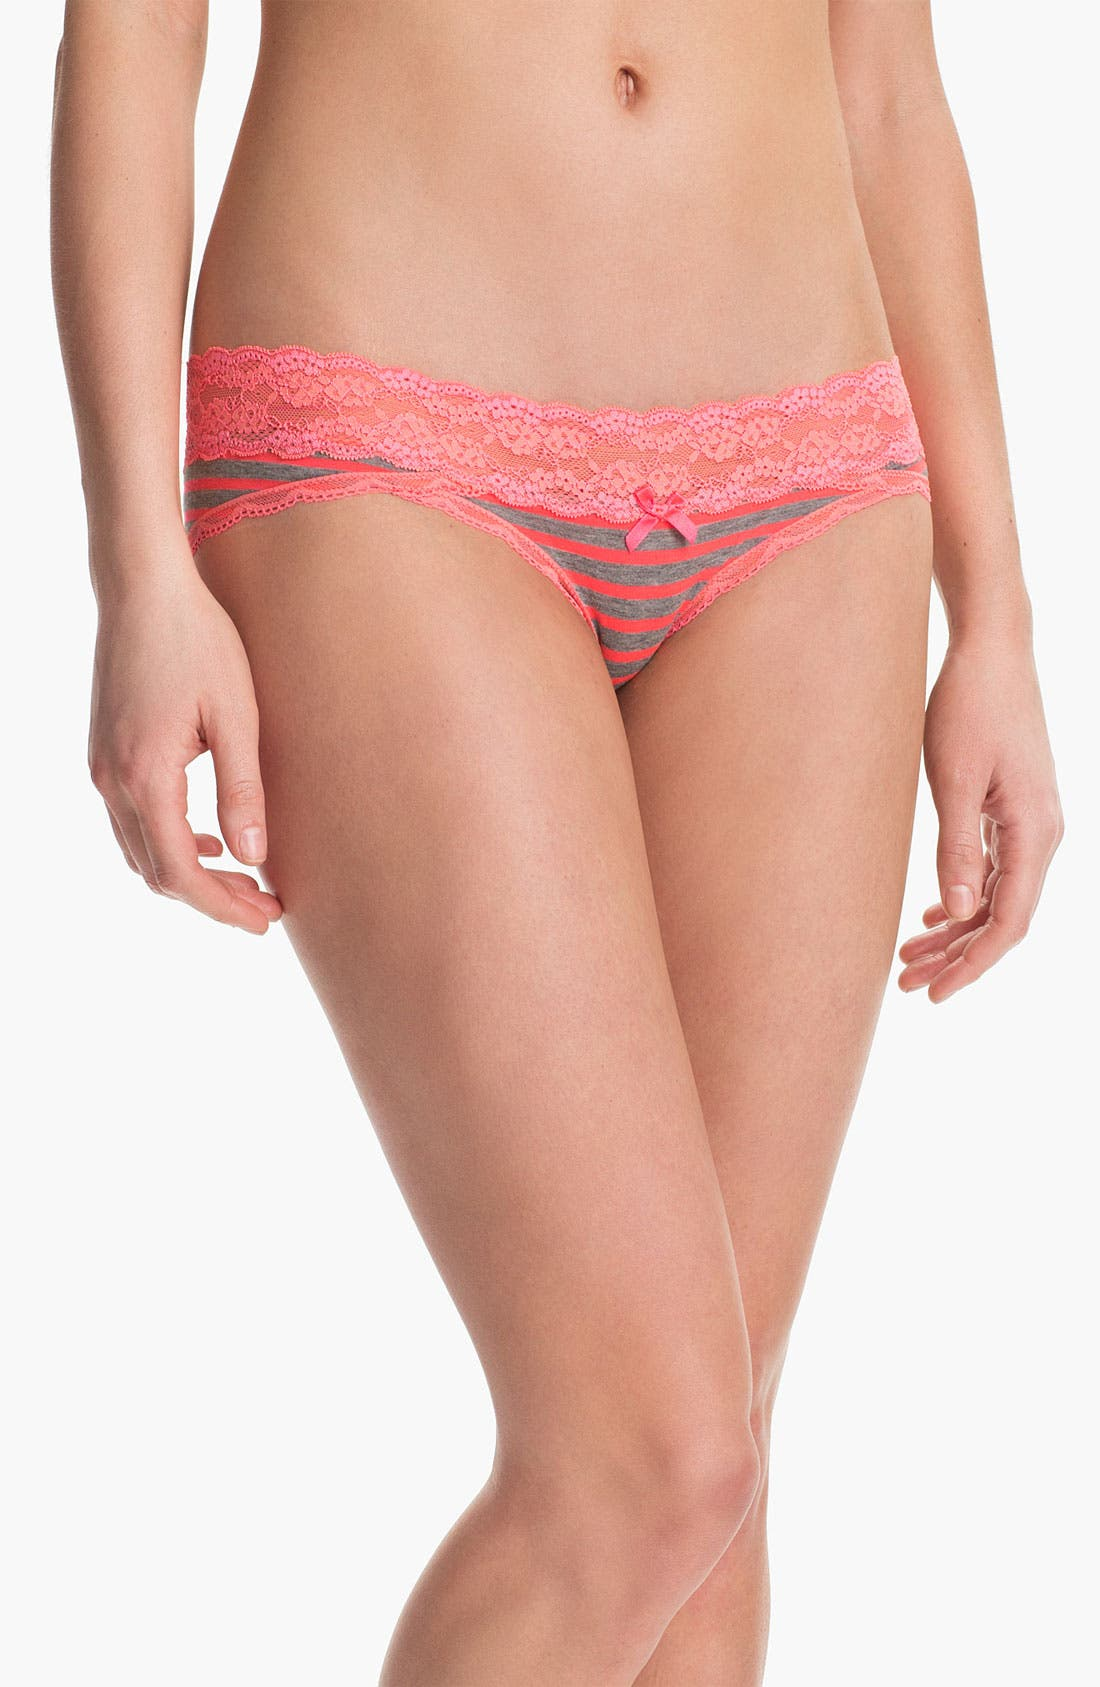 Alternate Image 1 Selected - Honeydew Intimates 'Zenith' Lace & Stripe Hipster Briefs (3 for $30)